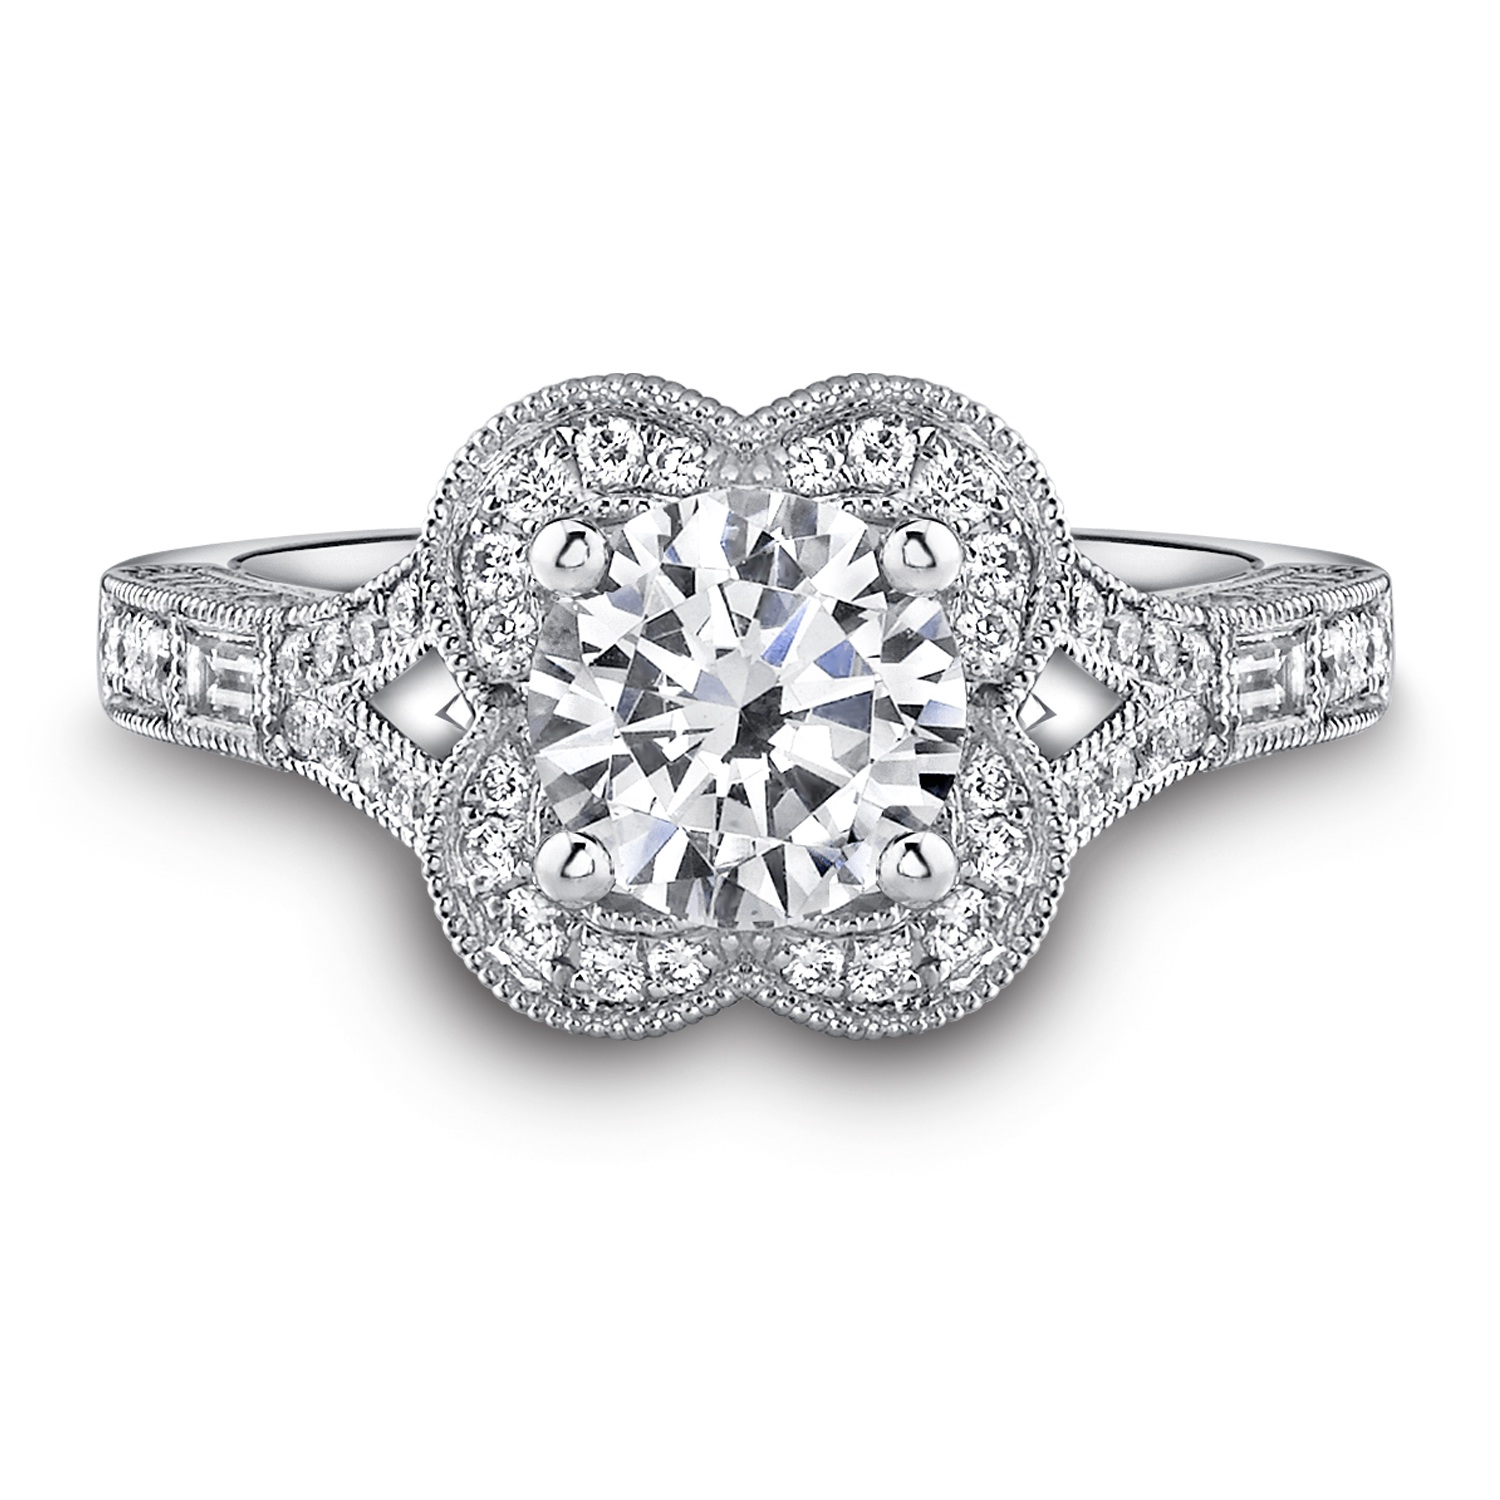 Kirk_kara_platinum_engagement_ring_3.original